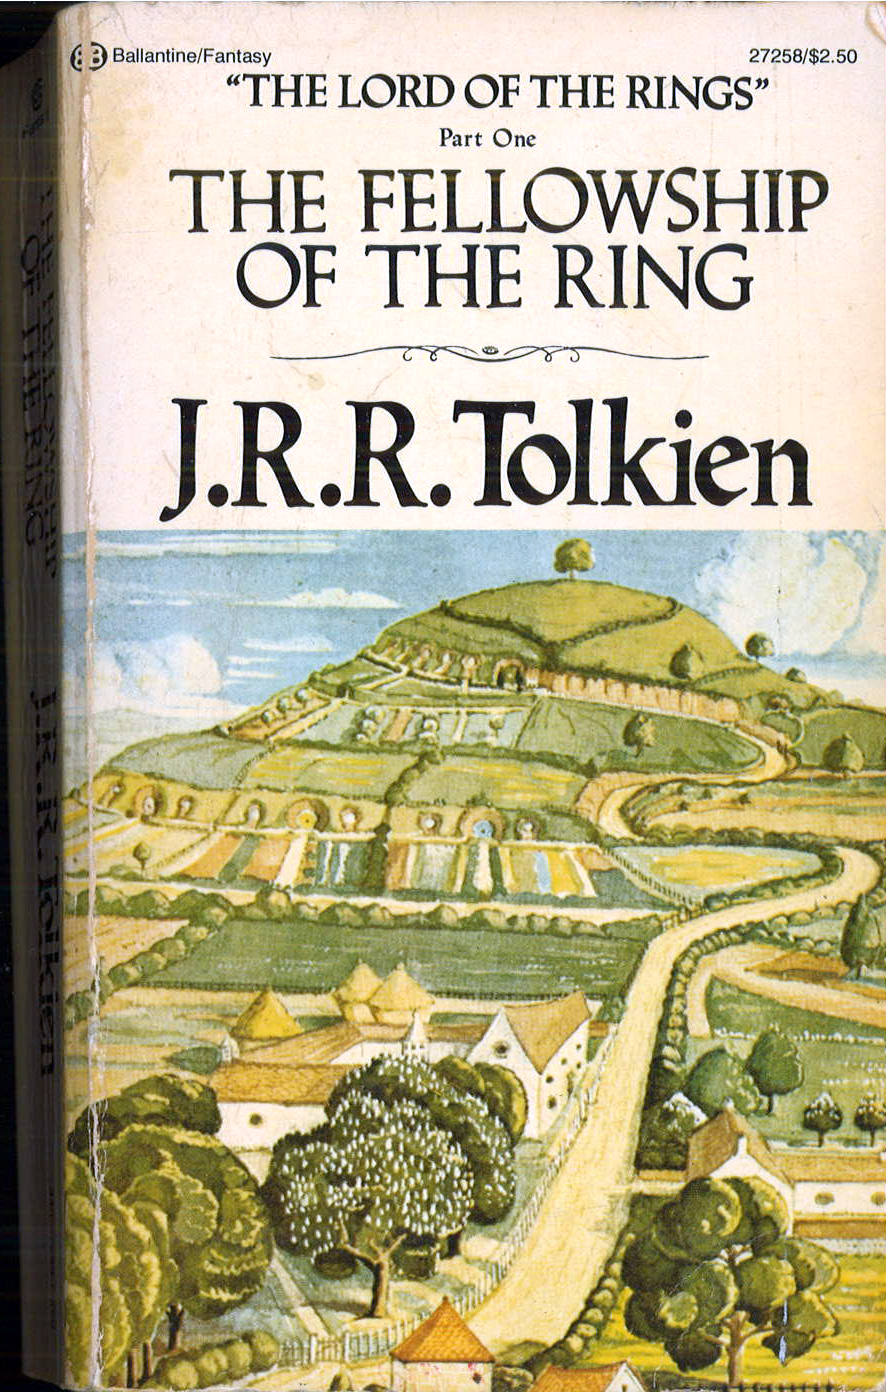 jrr tolkien and the twentieth century essay